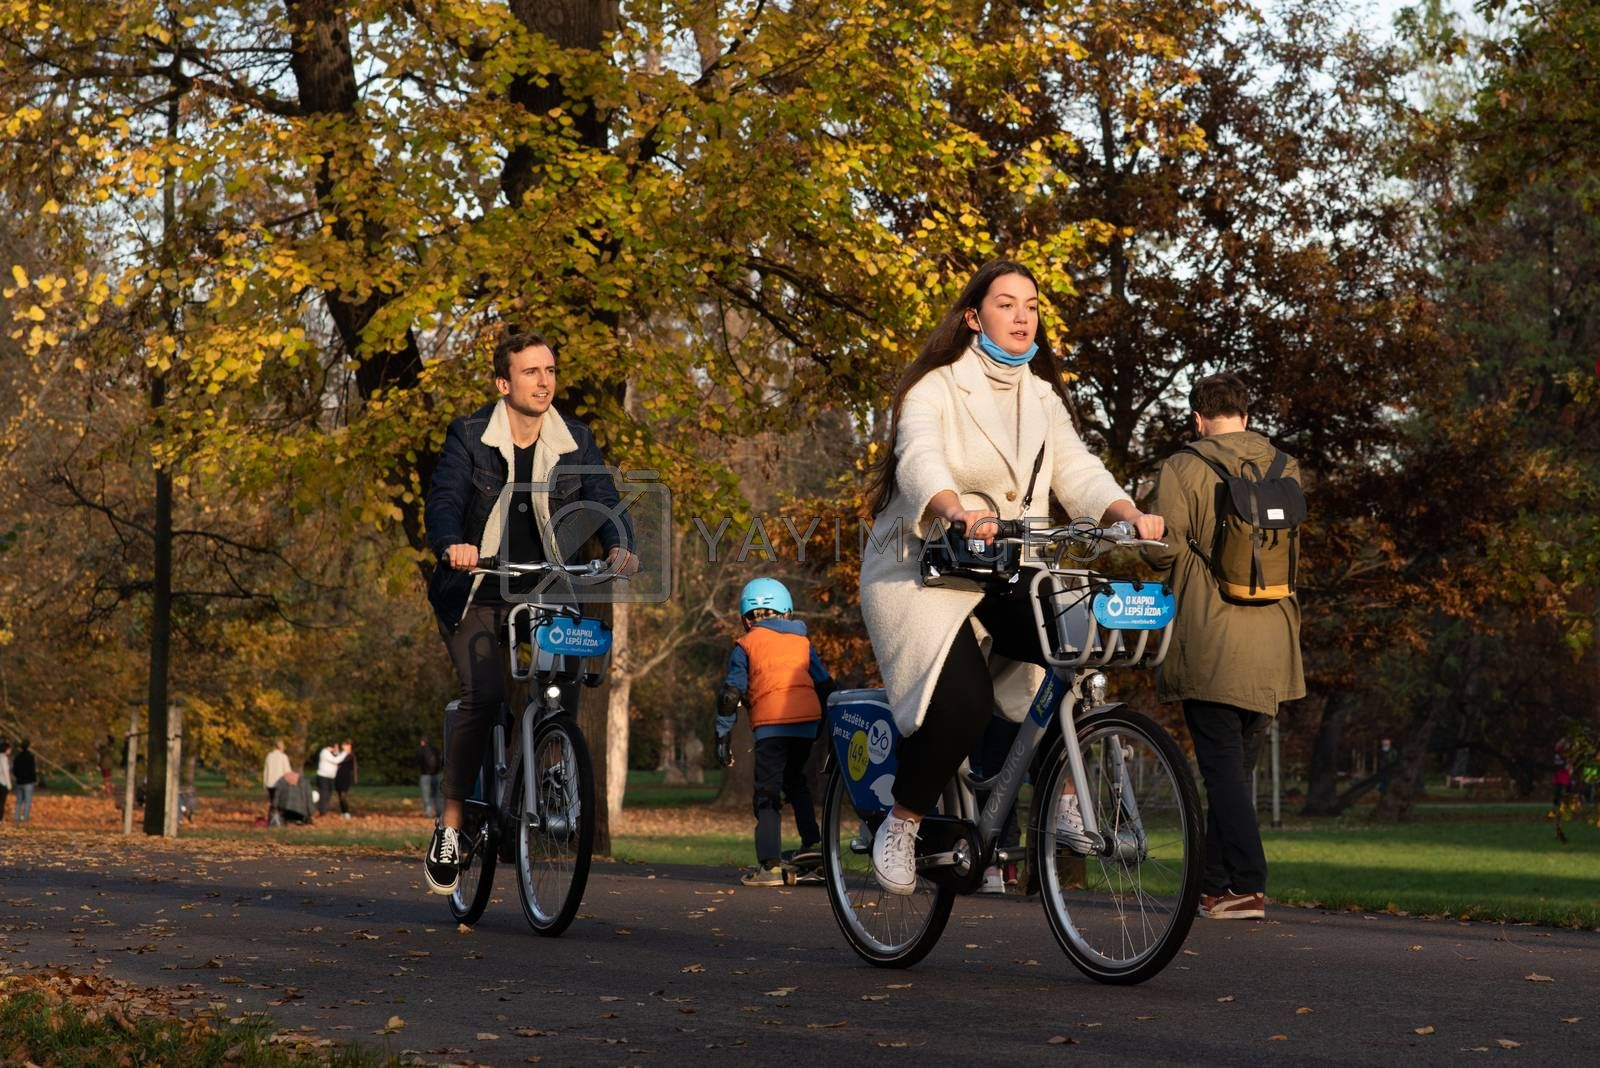 11/14/2020. Park Stromovka. Prague. Czech Republic. A couple is riding his bike at the park on a winter day.